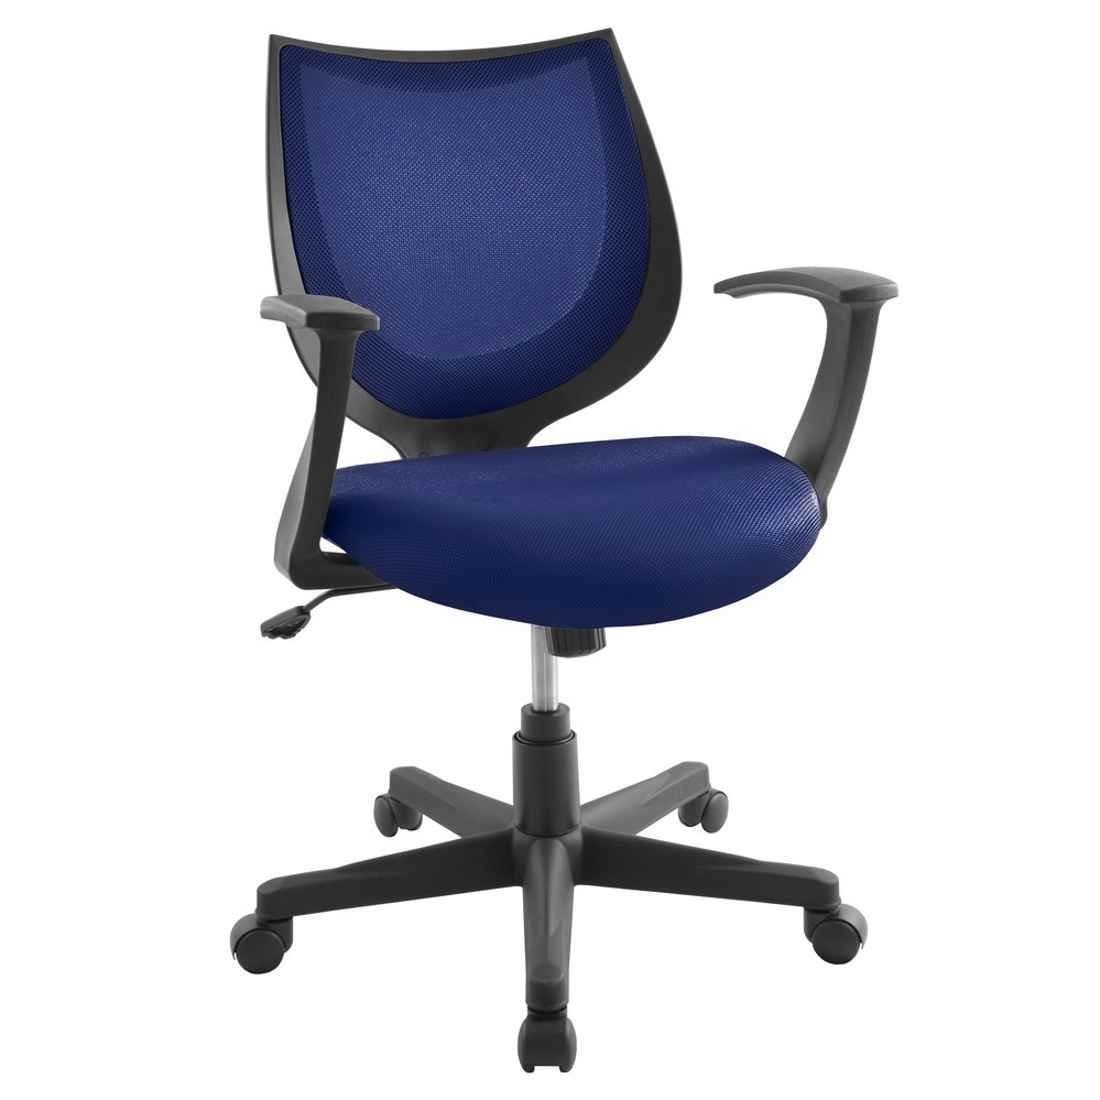 Blue Desk Chair blue desk chair for home office office furniture